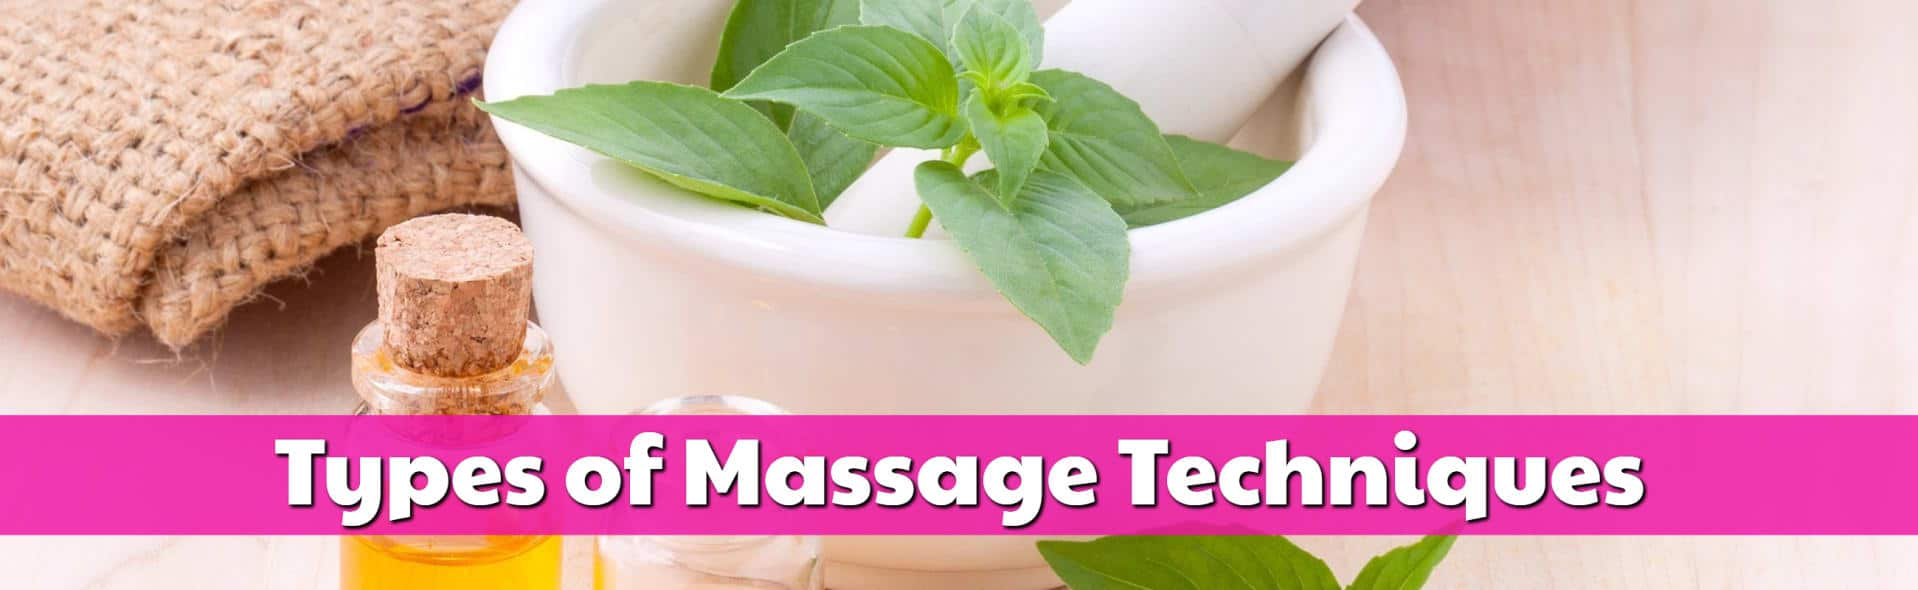 Types of Massage Techniques